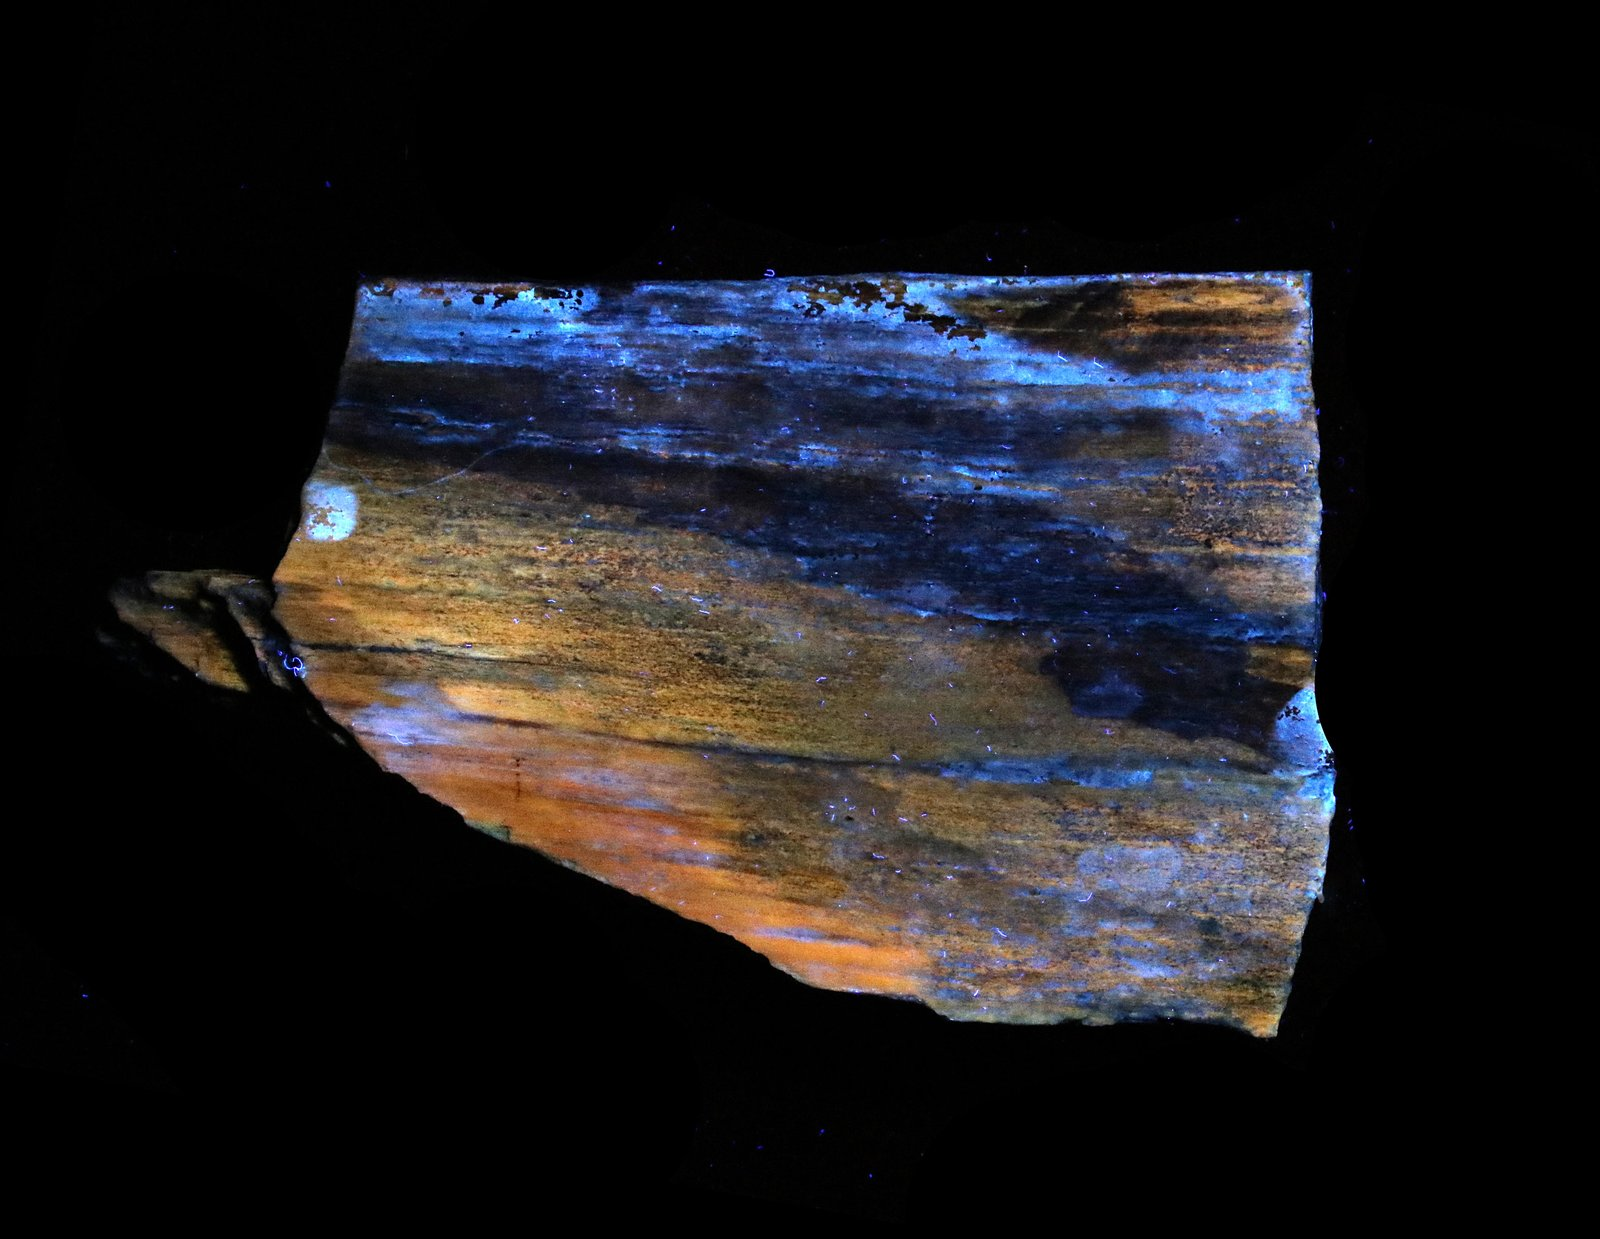 Petrified Wood Under UV